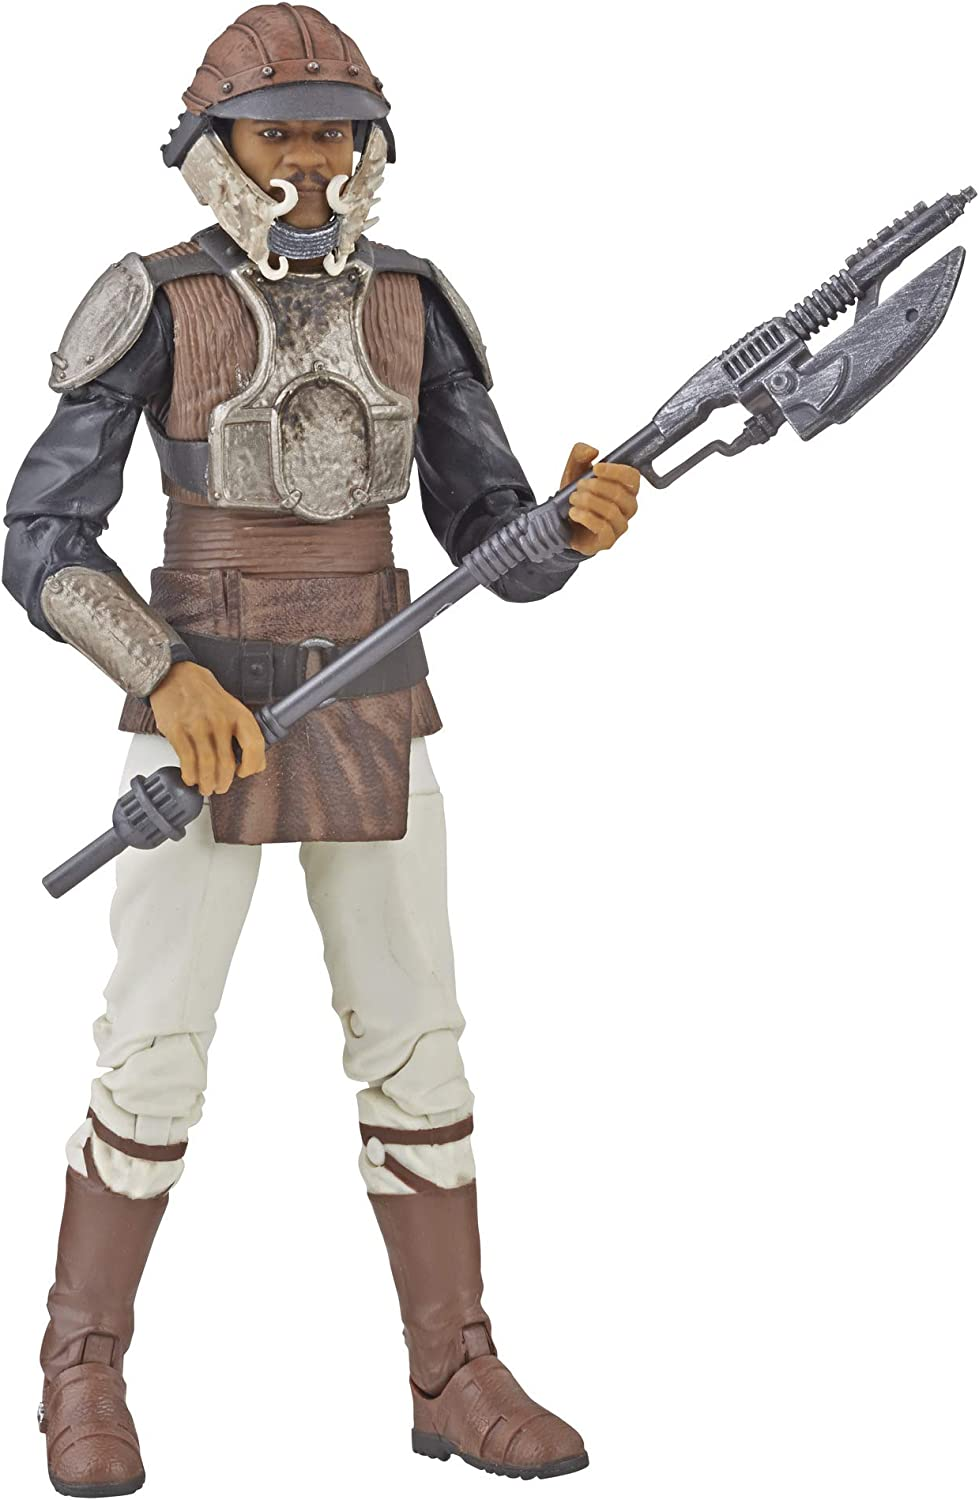 "Star Wars E1214 The Black Series 6"" Lando Calrissian (Skiff Guard Disguise) Figure"